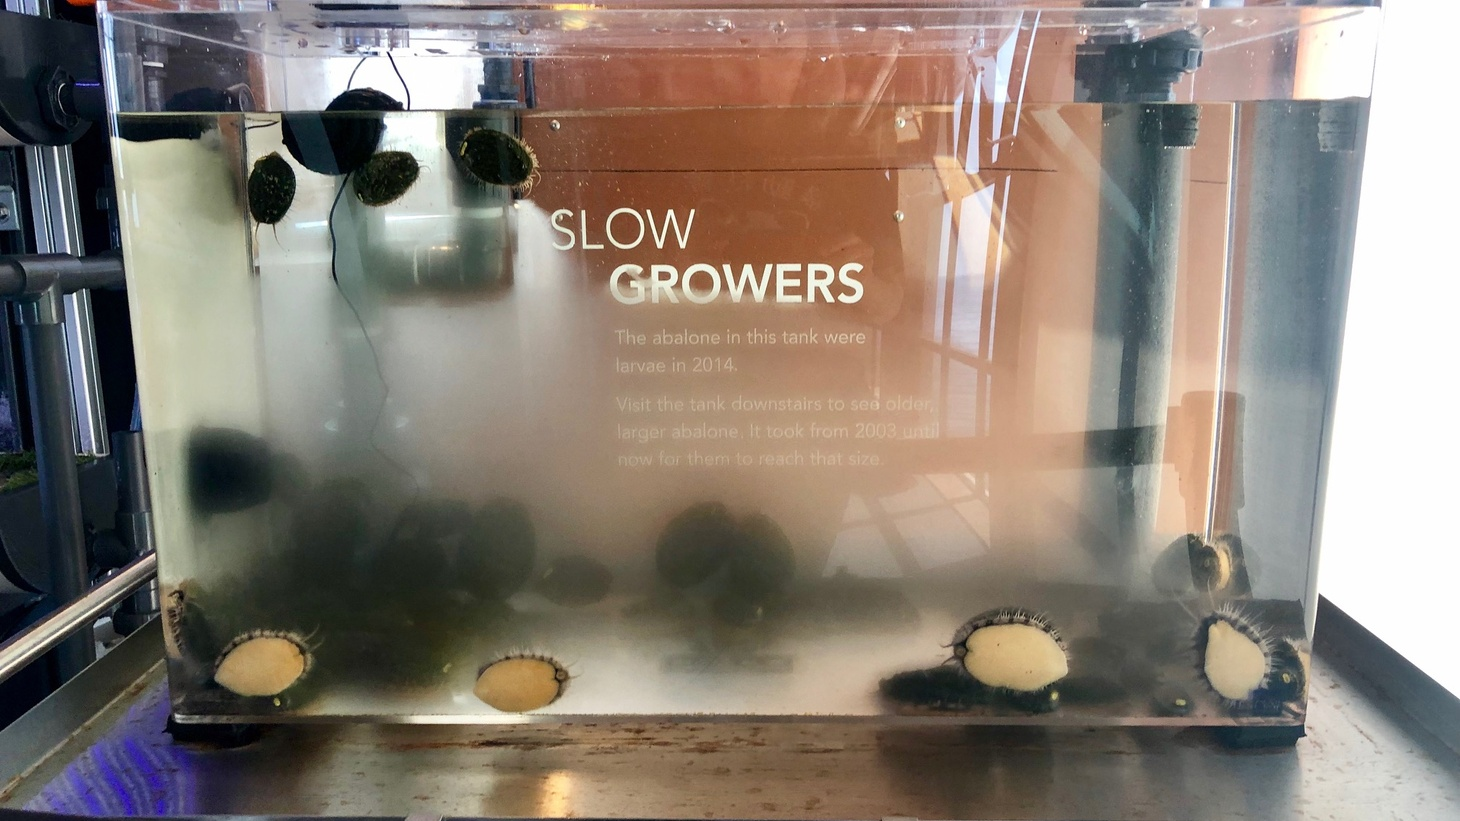 Conservationists use incubation tanks to raise white abalone in a protected captive environment. Then the abalone can be released into the wild.